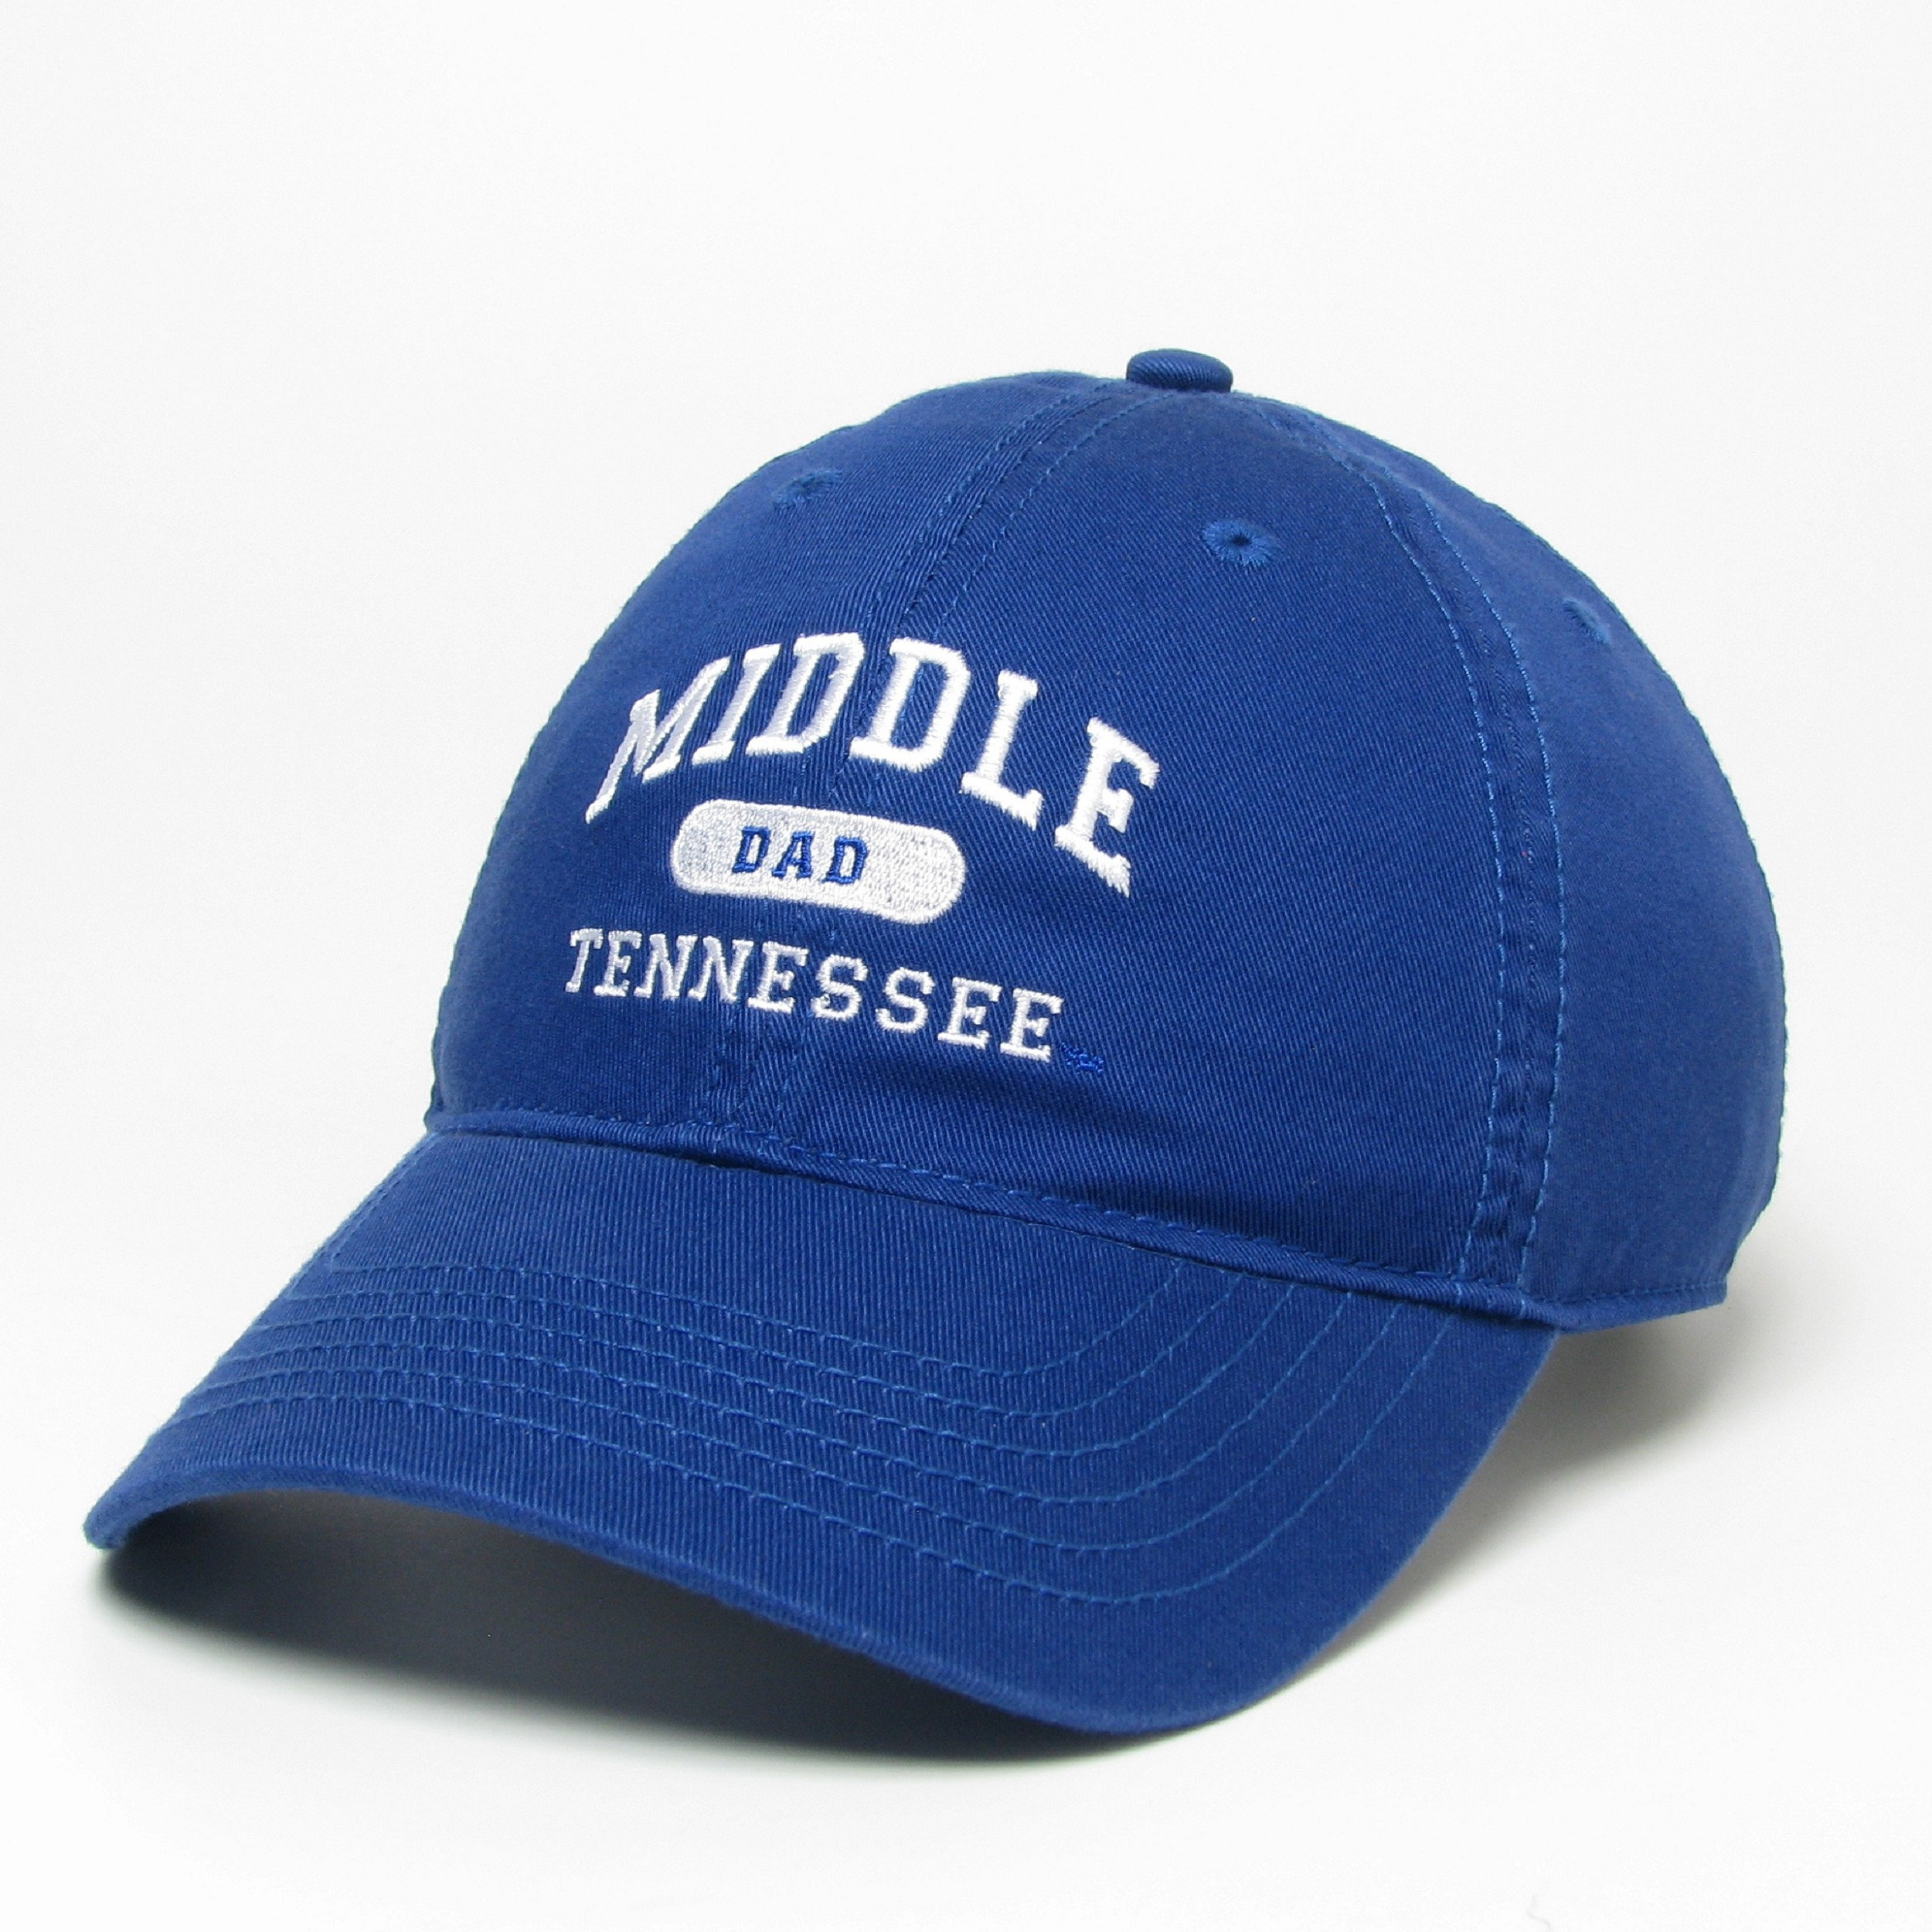 Middle Tennessee Dad Relaxed Twill Hat